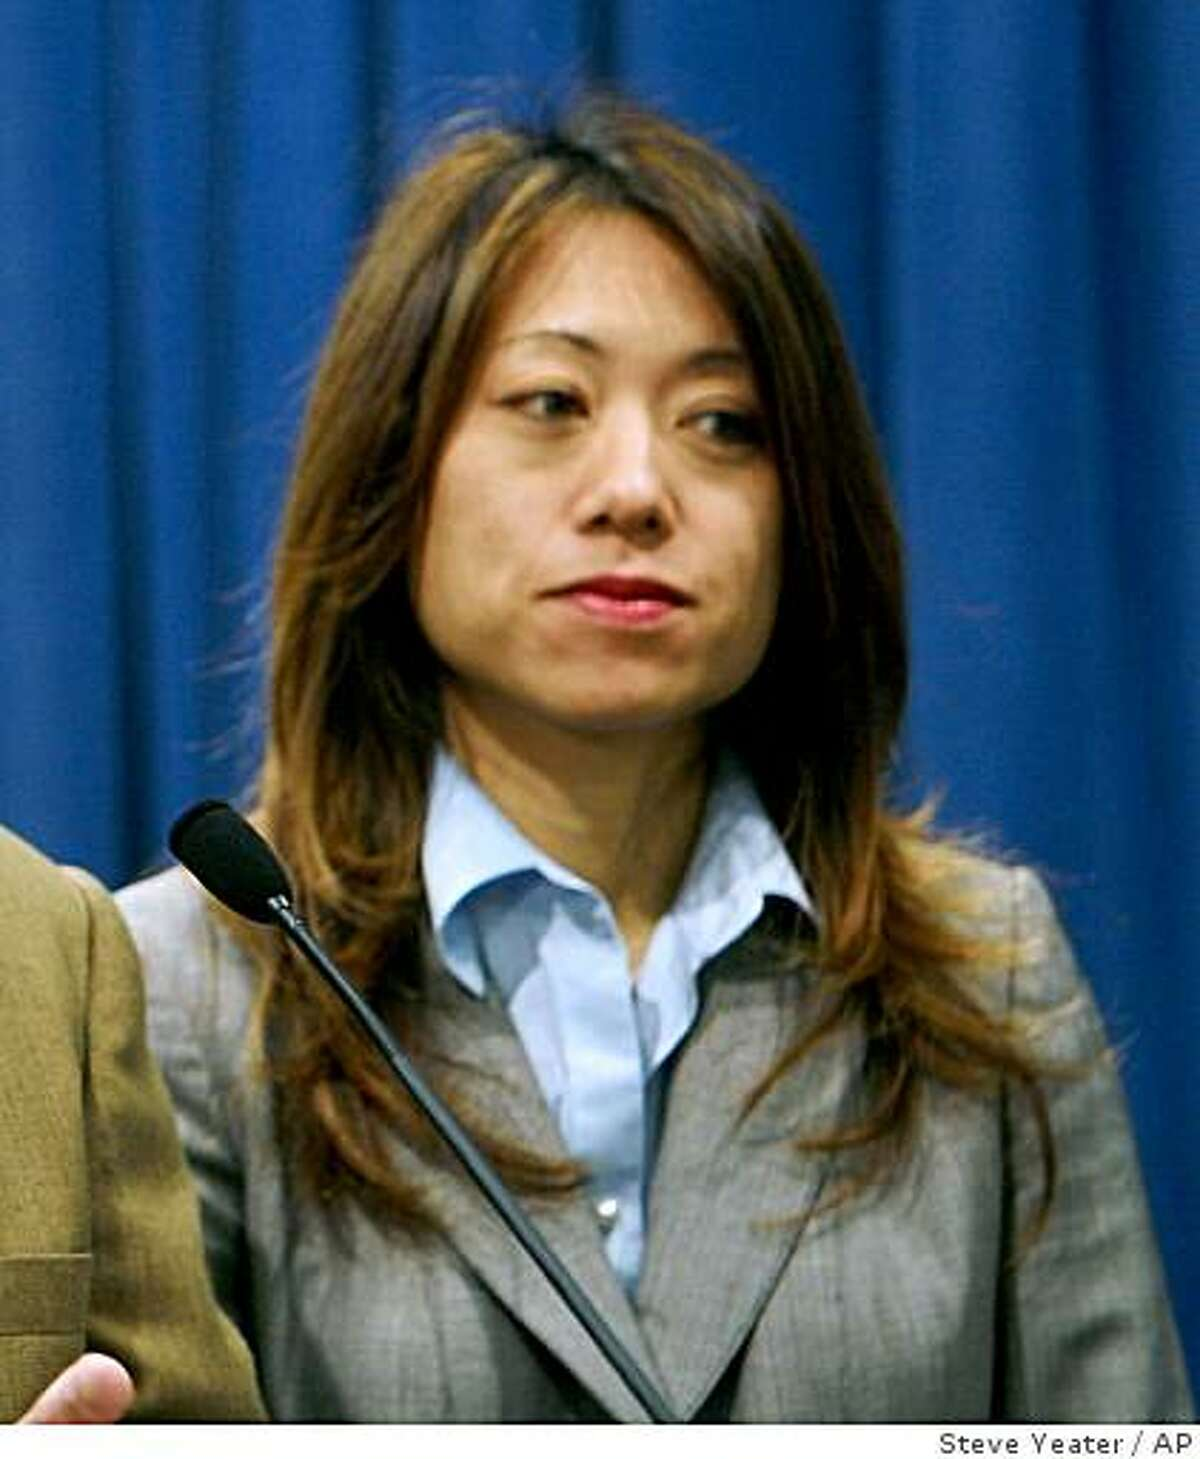 Assemblyman Anthony Adams, R-Hesperia, left, and Assemblywoman Fiona Ma, D-San Francisco, right, talk about a recent audit that raised concerns that sex offenders may be living in homes used for child daycare and foster care during a news conference at the Capitol in Sacramento, Calif., on Thursday, April 17, 2008.(AP Photo/Steve Yeater)